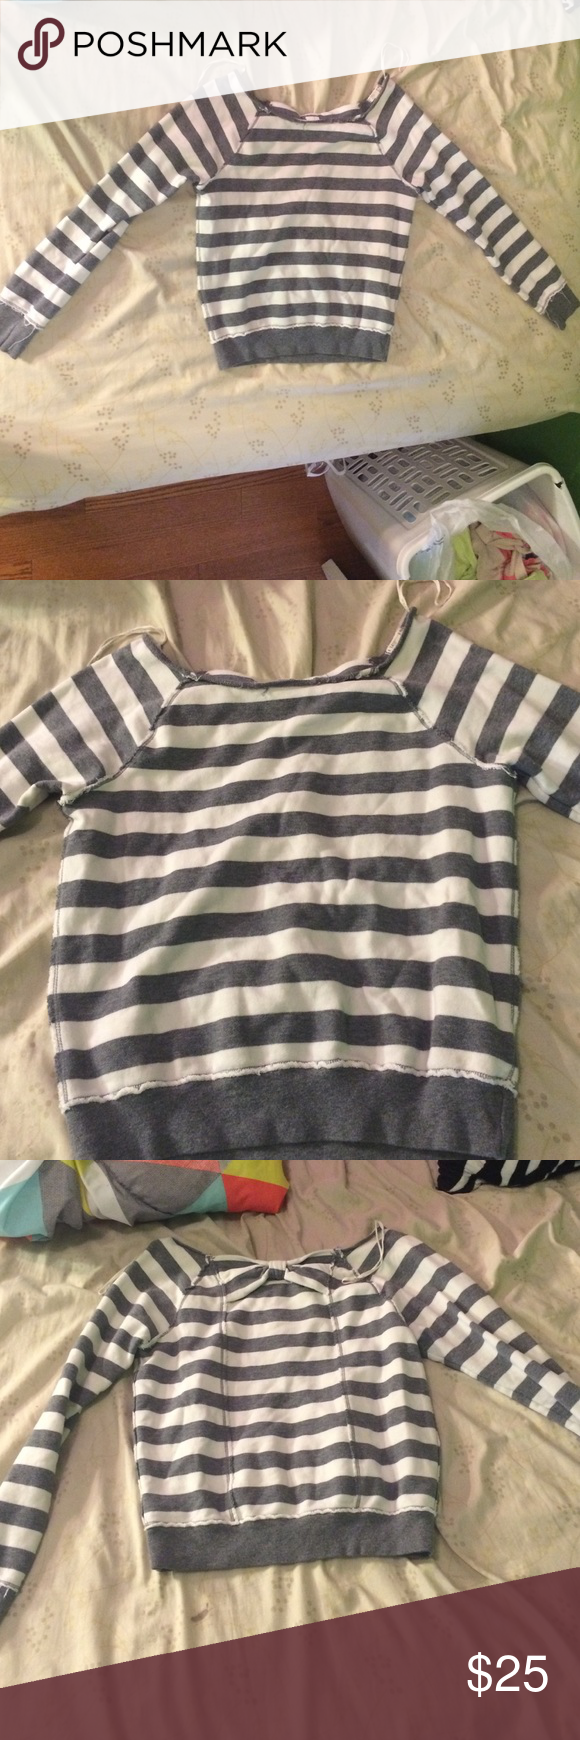 Sweater/shirt Grey and white stripes. Very comfortable, adorable, not tight, warm I LOVE H-81 Tops Sweatshirts & Hoodies